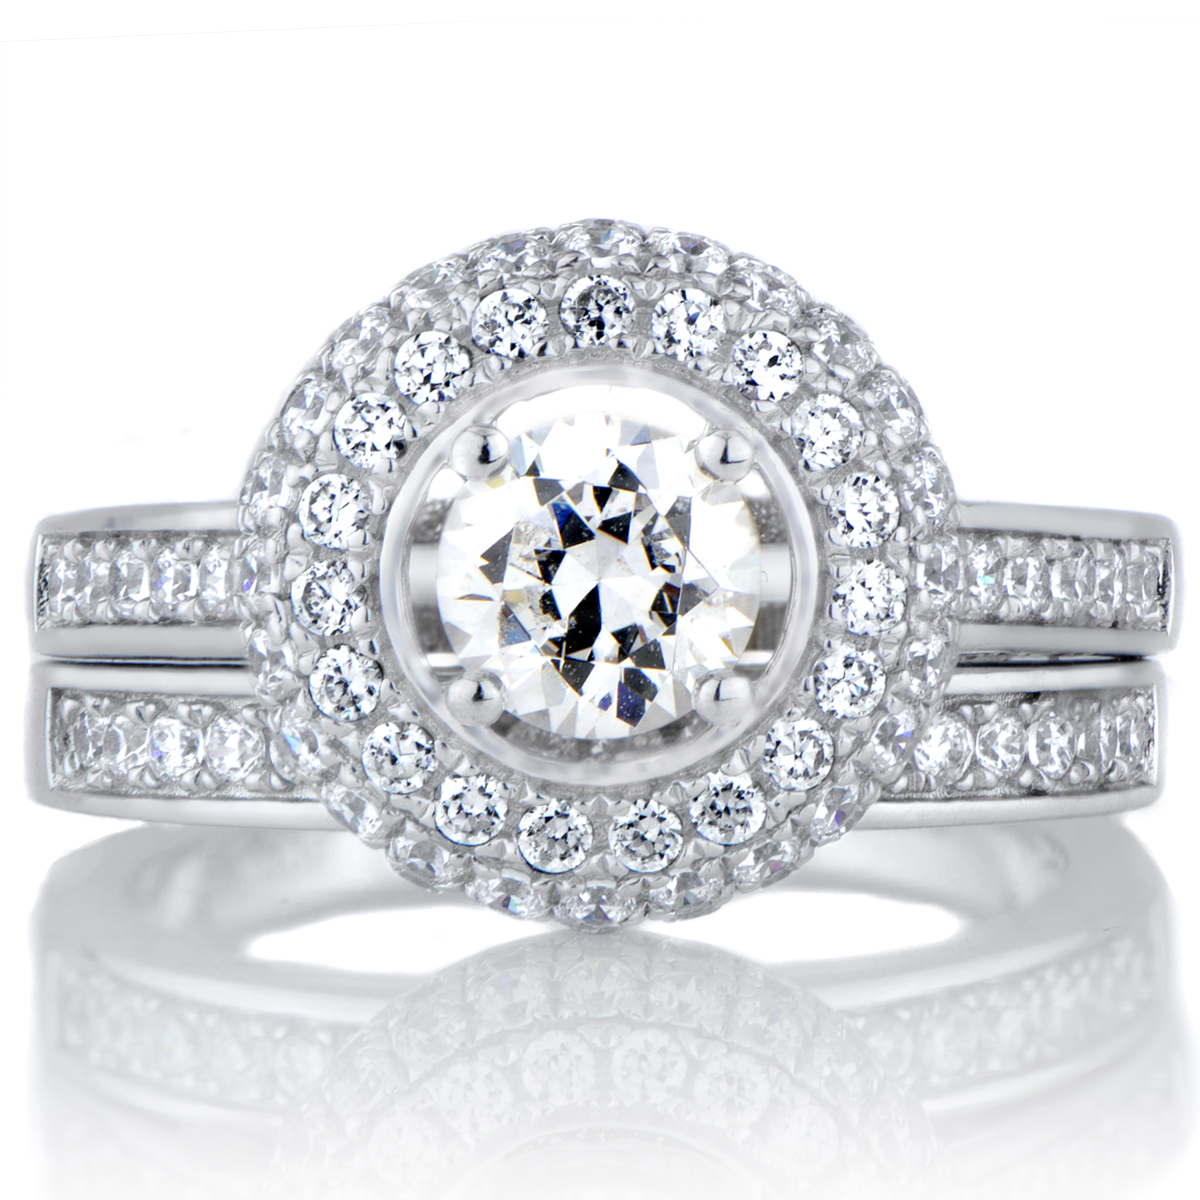 Halo Cubic Zirconia Wedding Ring Set